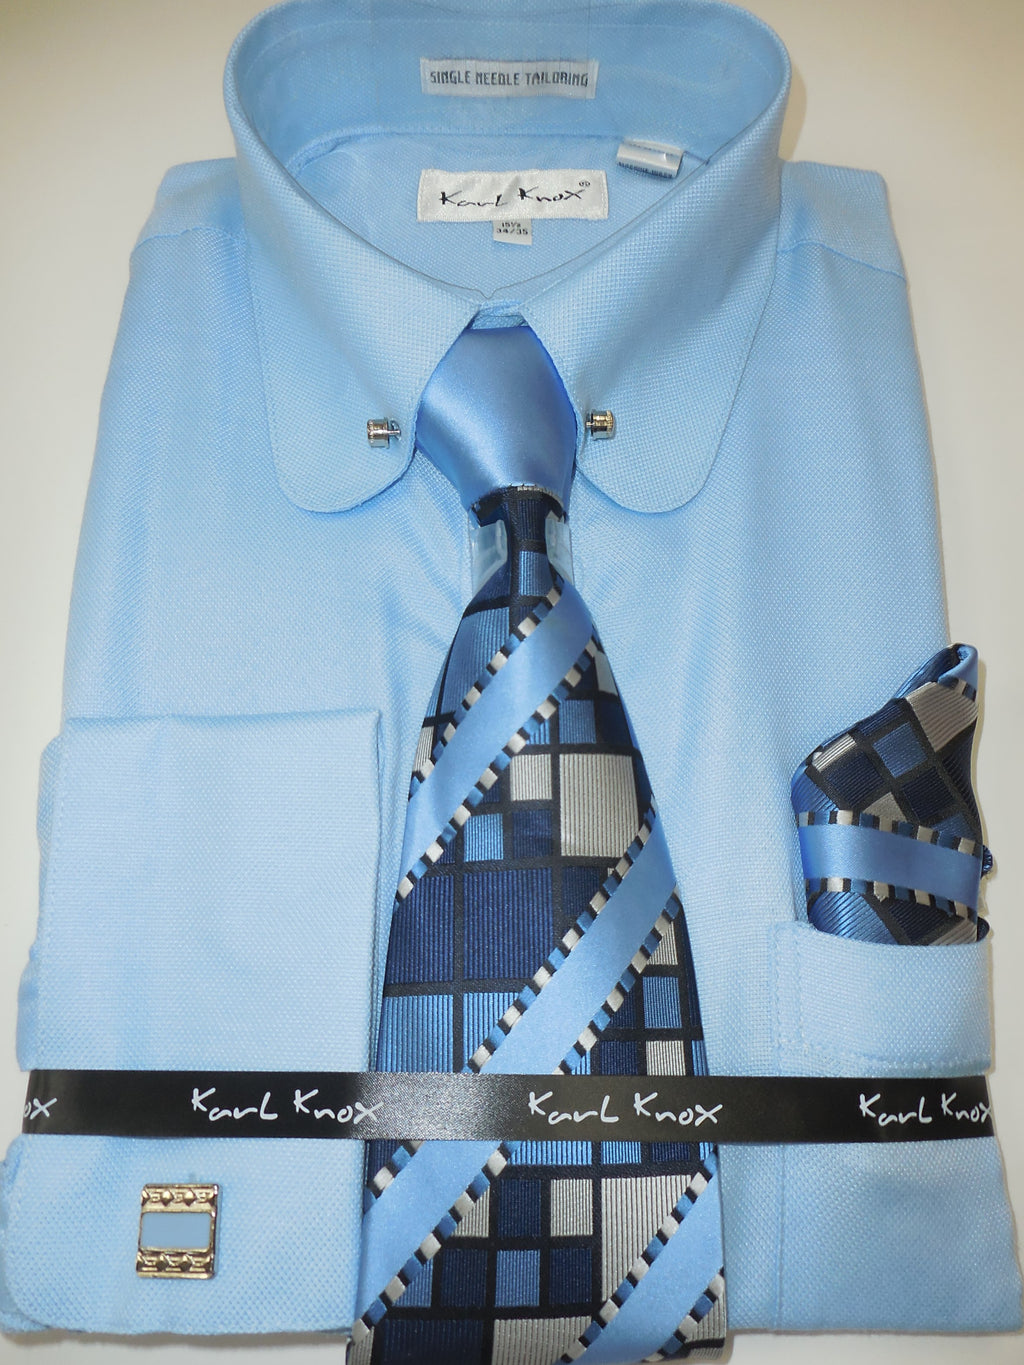 Mens Baby Blue Round Club Collar Bar Cuffed Dress Shirt + Tie Set Karl Knox 4393 S